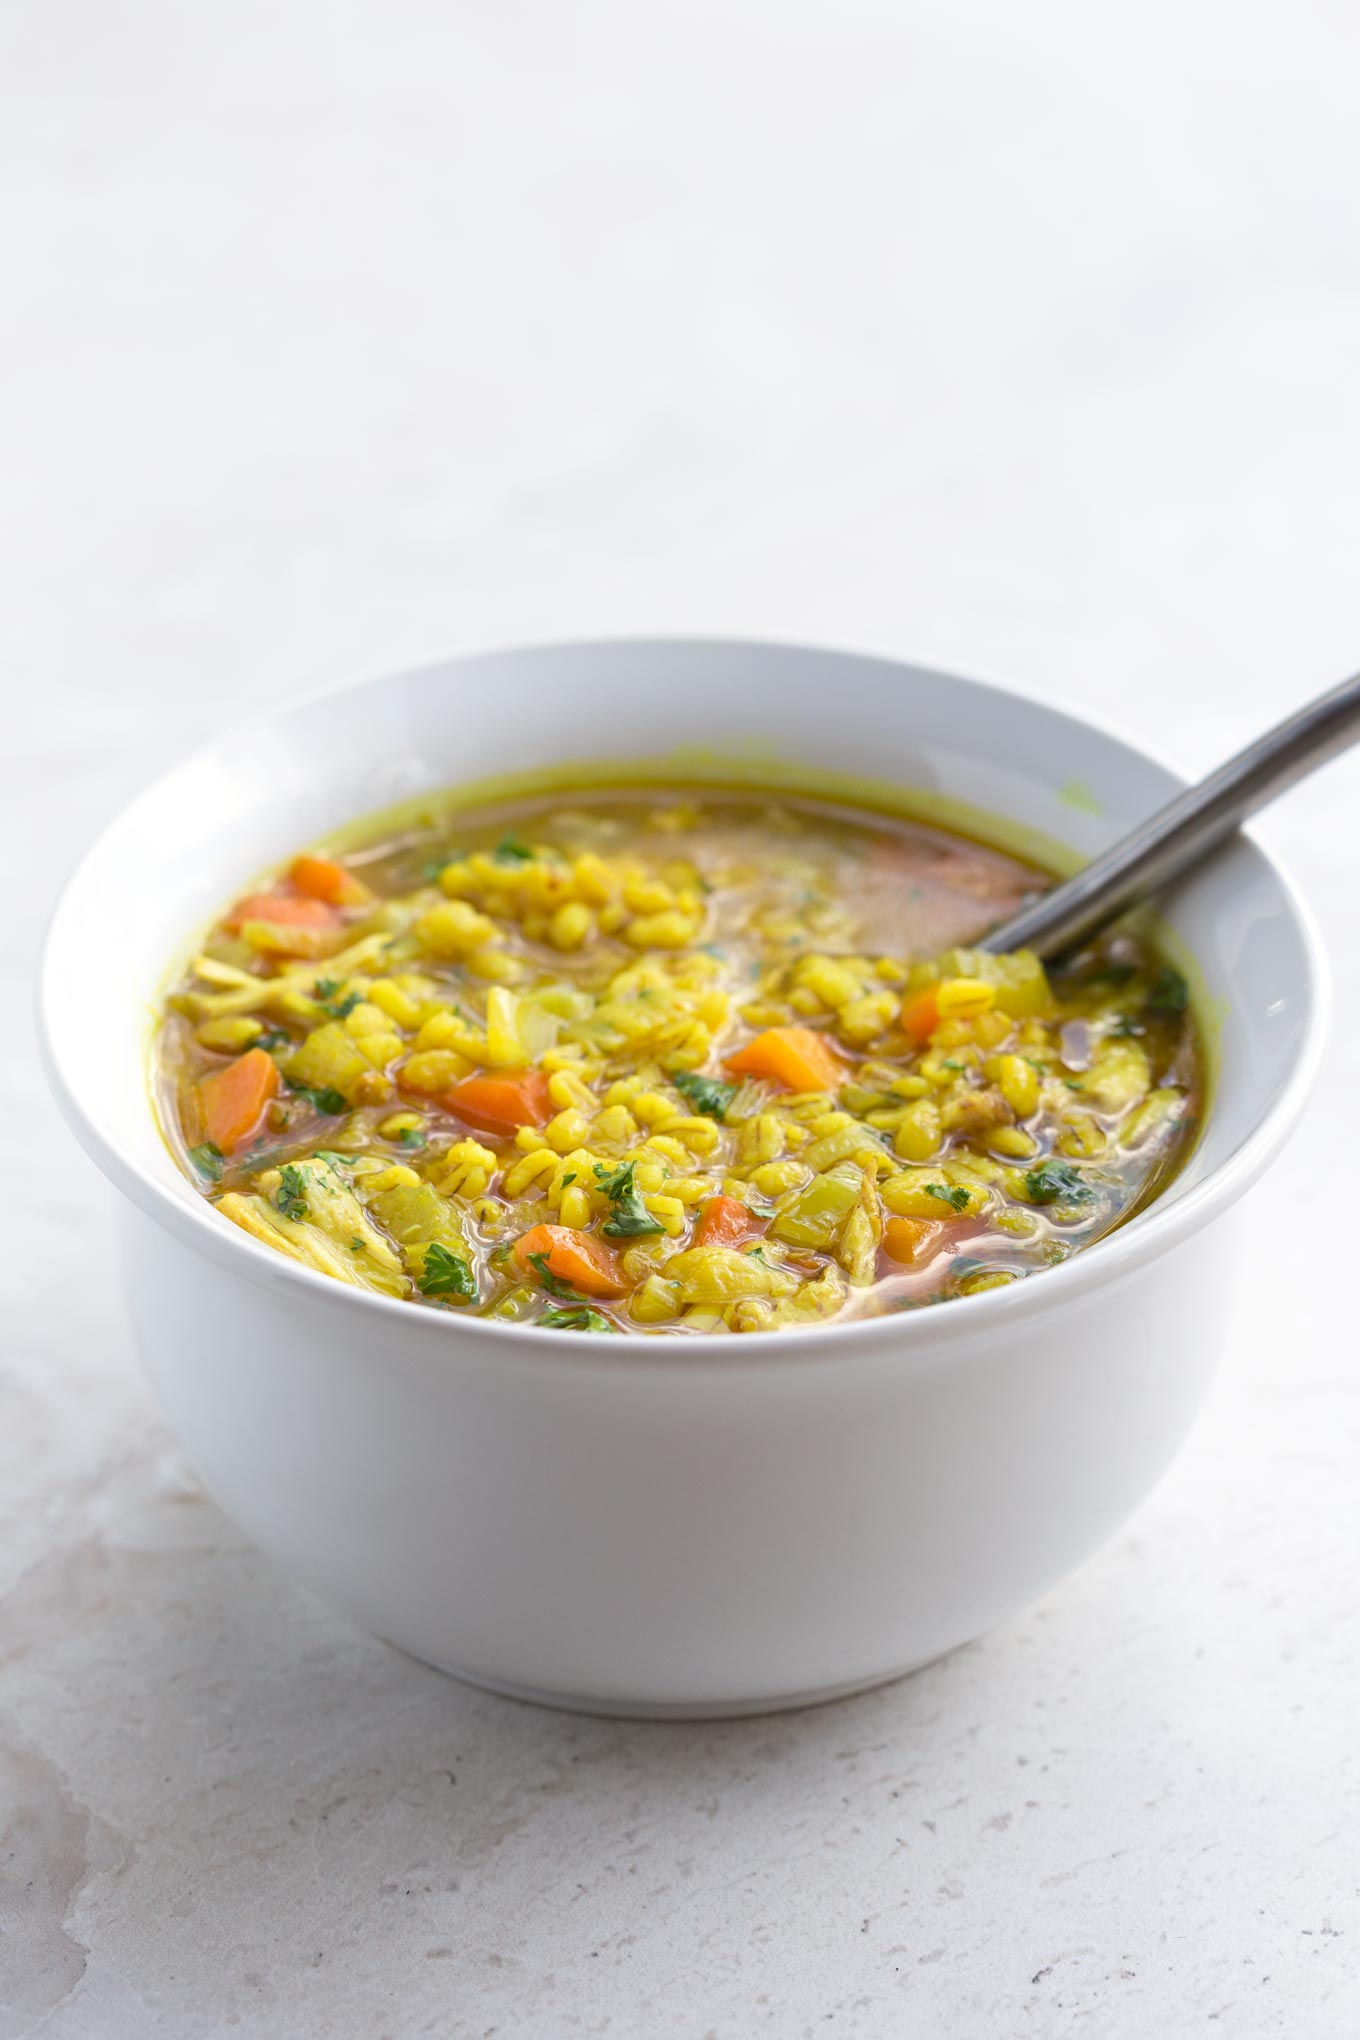 Chicken Soup with Barley and Turmeric in a White Serving Bowl - 90 degree view